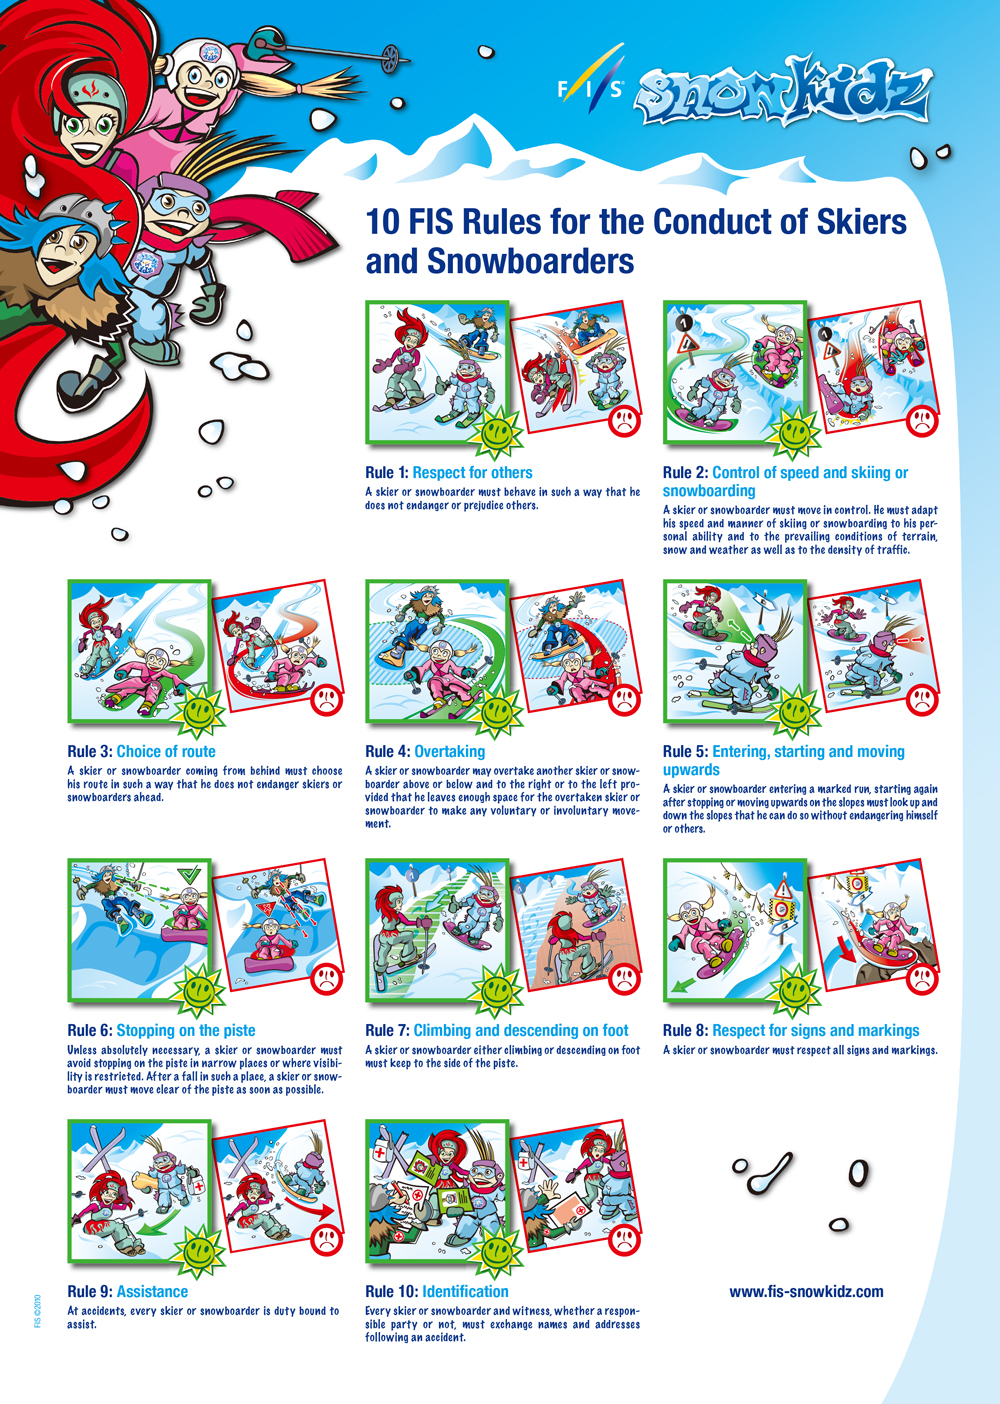 Ski Area Safety and Rules